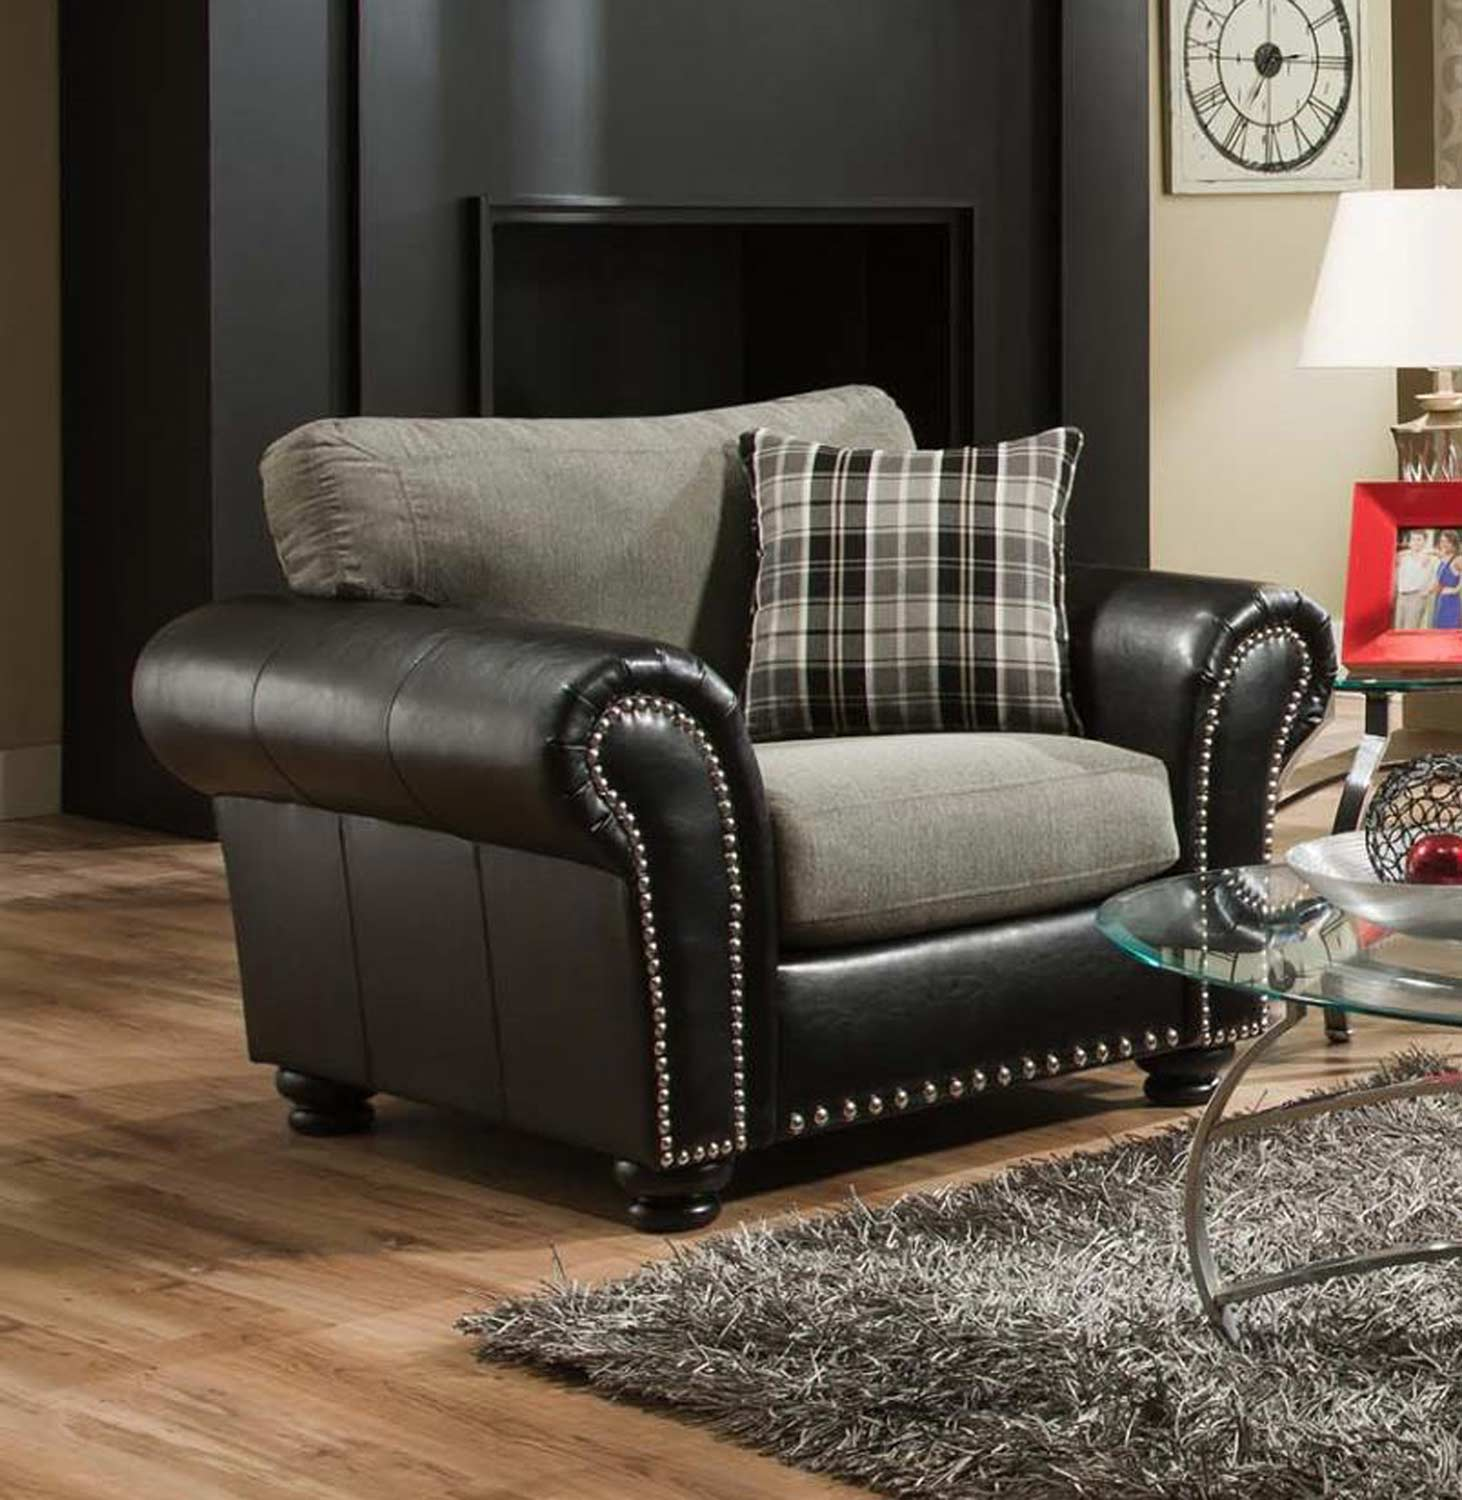 Chelsea Home Simpson Accent Chair - Talbot Graphite